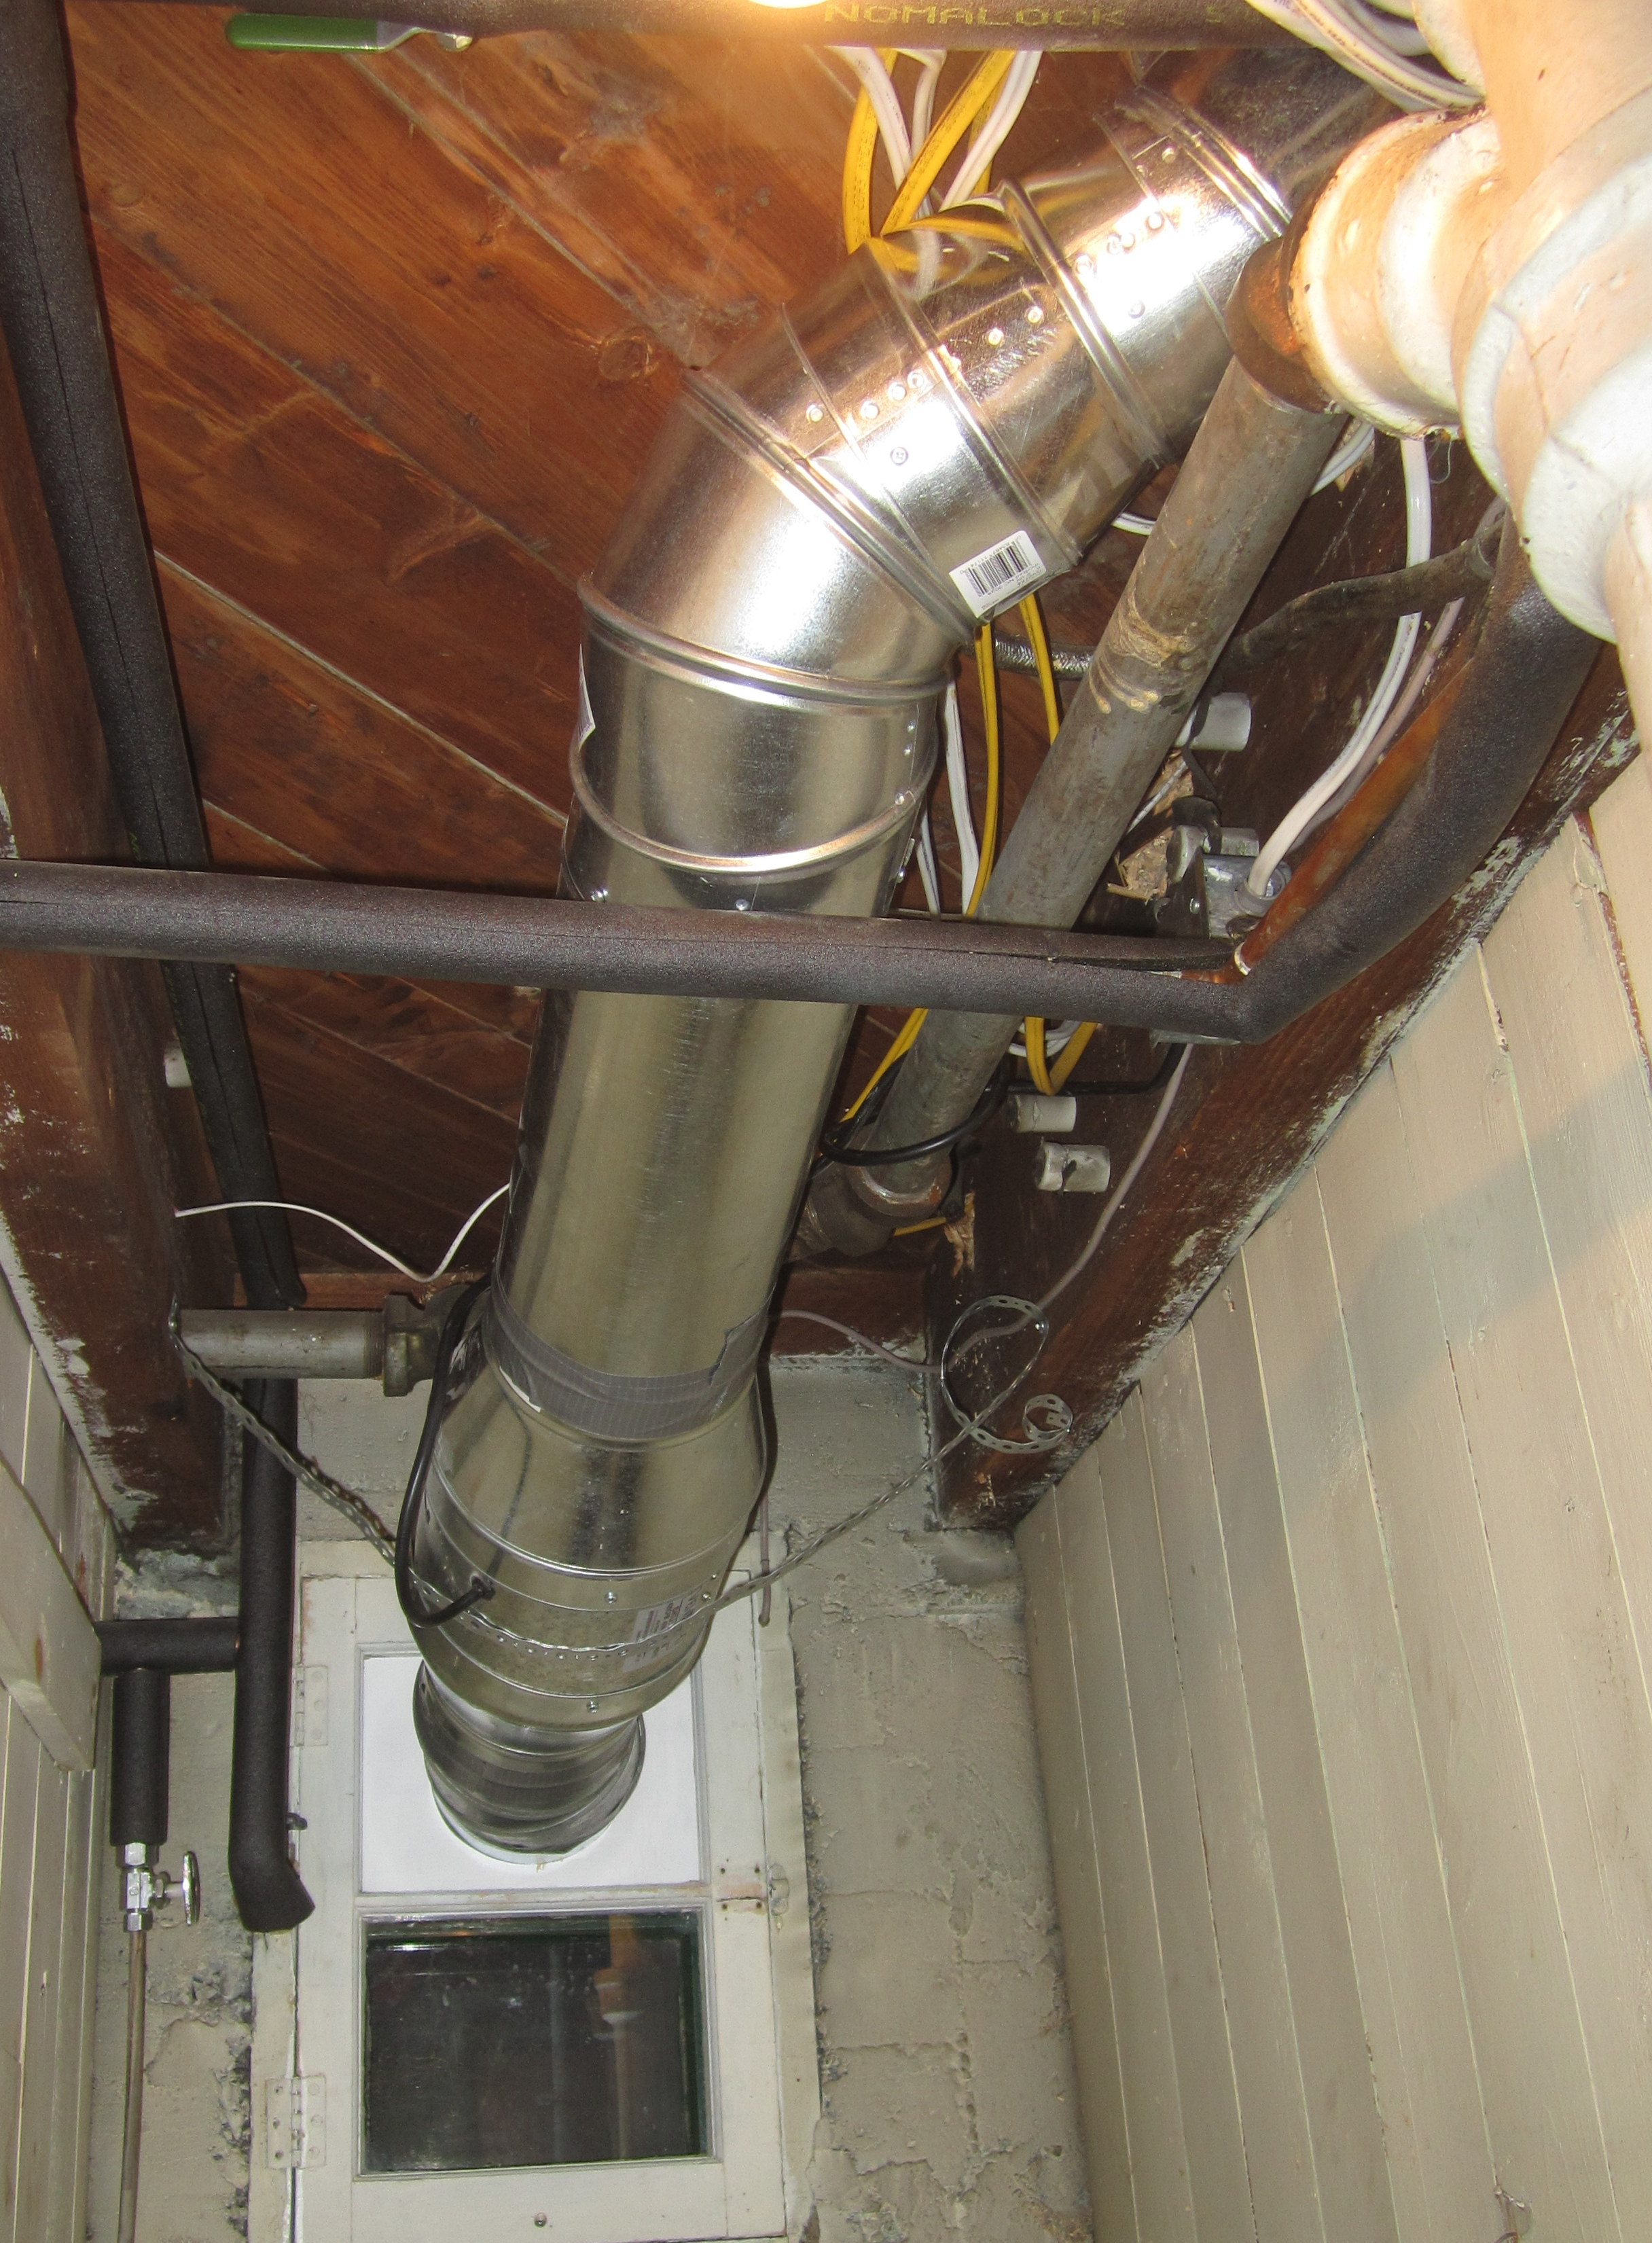 kitchen ventilation ducting